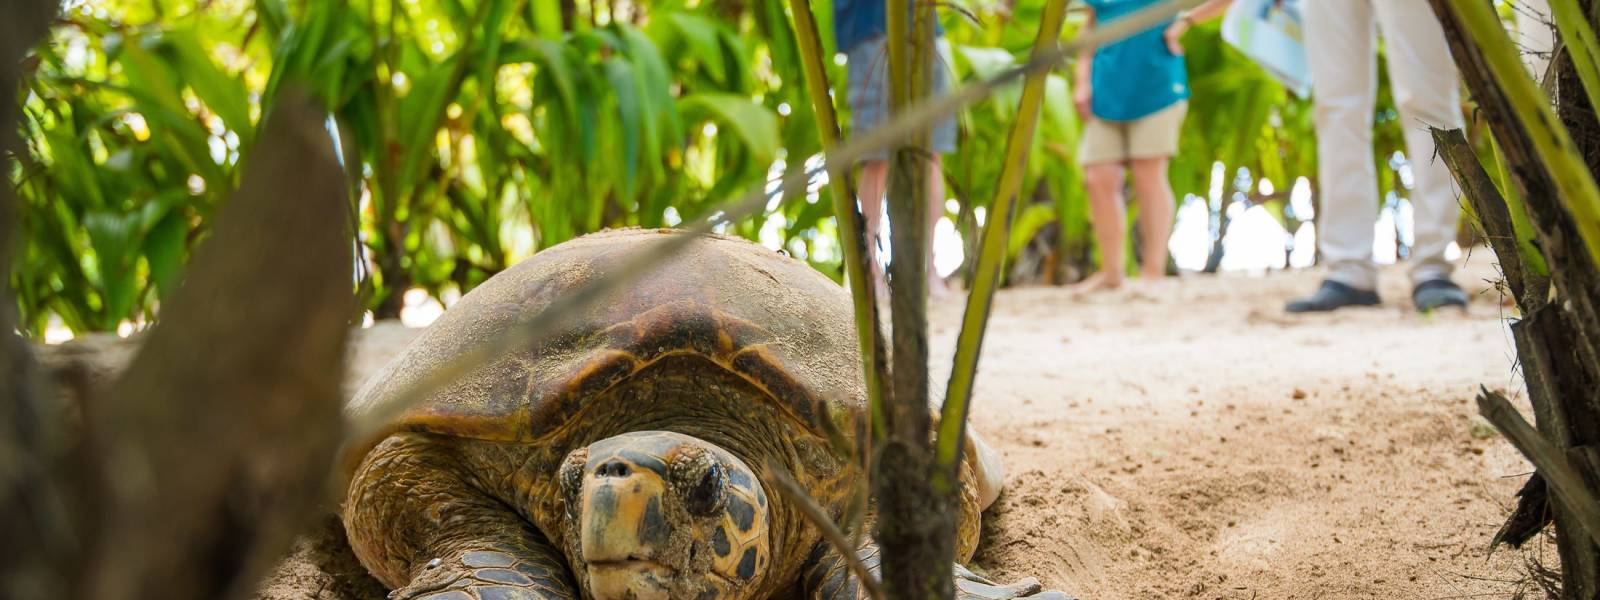 a turtle on a dirt road